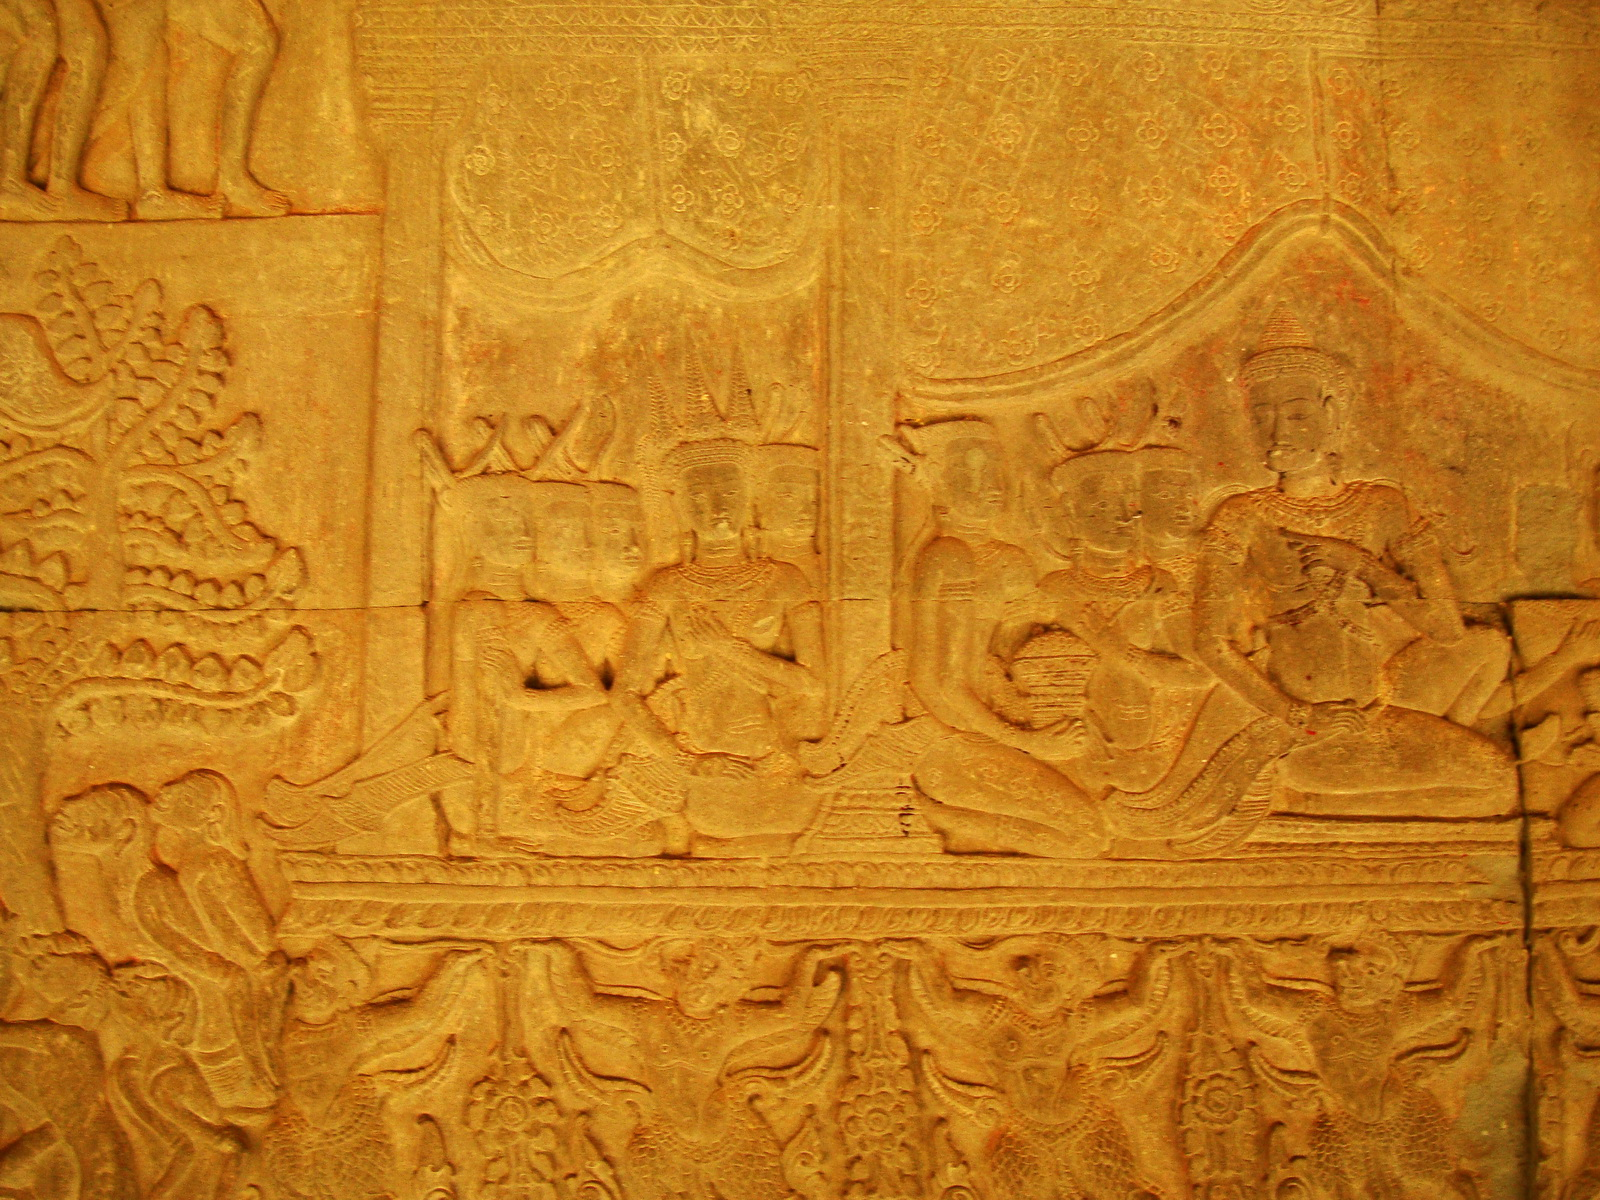 Angkor Wat Bas relief S Gallery E Wing Heavens and Hells 64